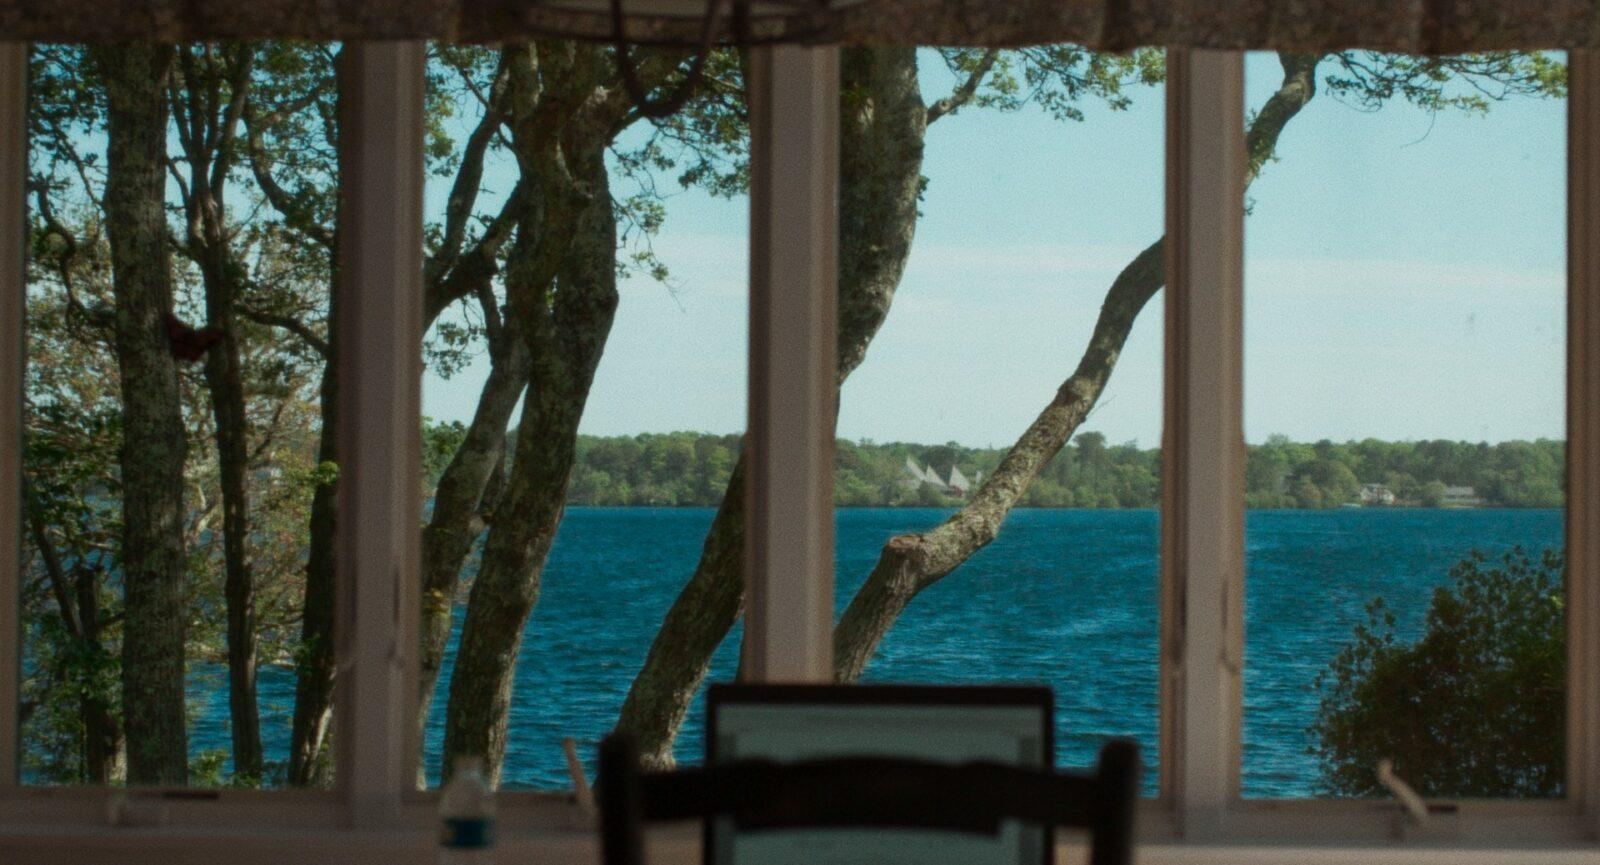 A window with a view of the water.